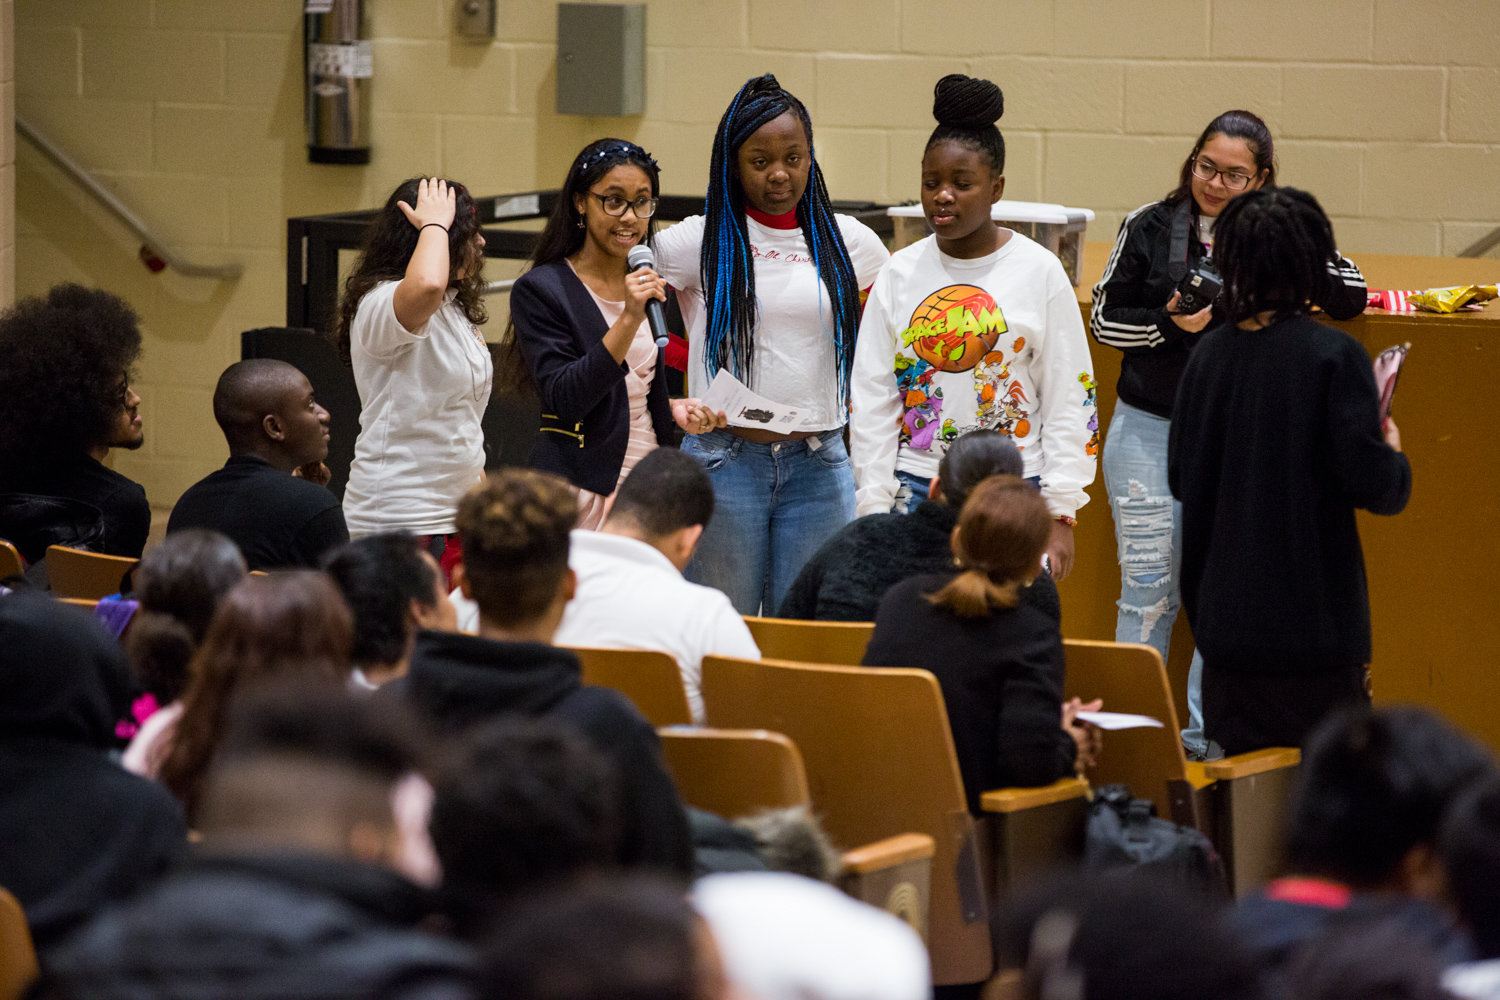 Students participate in an interactive poem for the Marble Hill School for International Studies' second annual Black History Show, organized by the school's new Black Student Union.